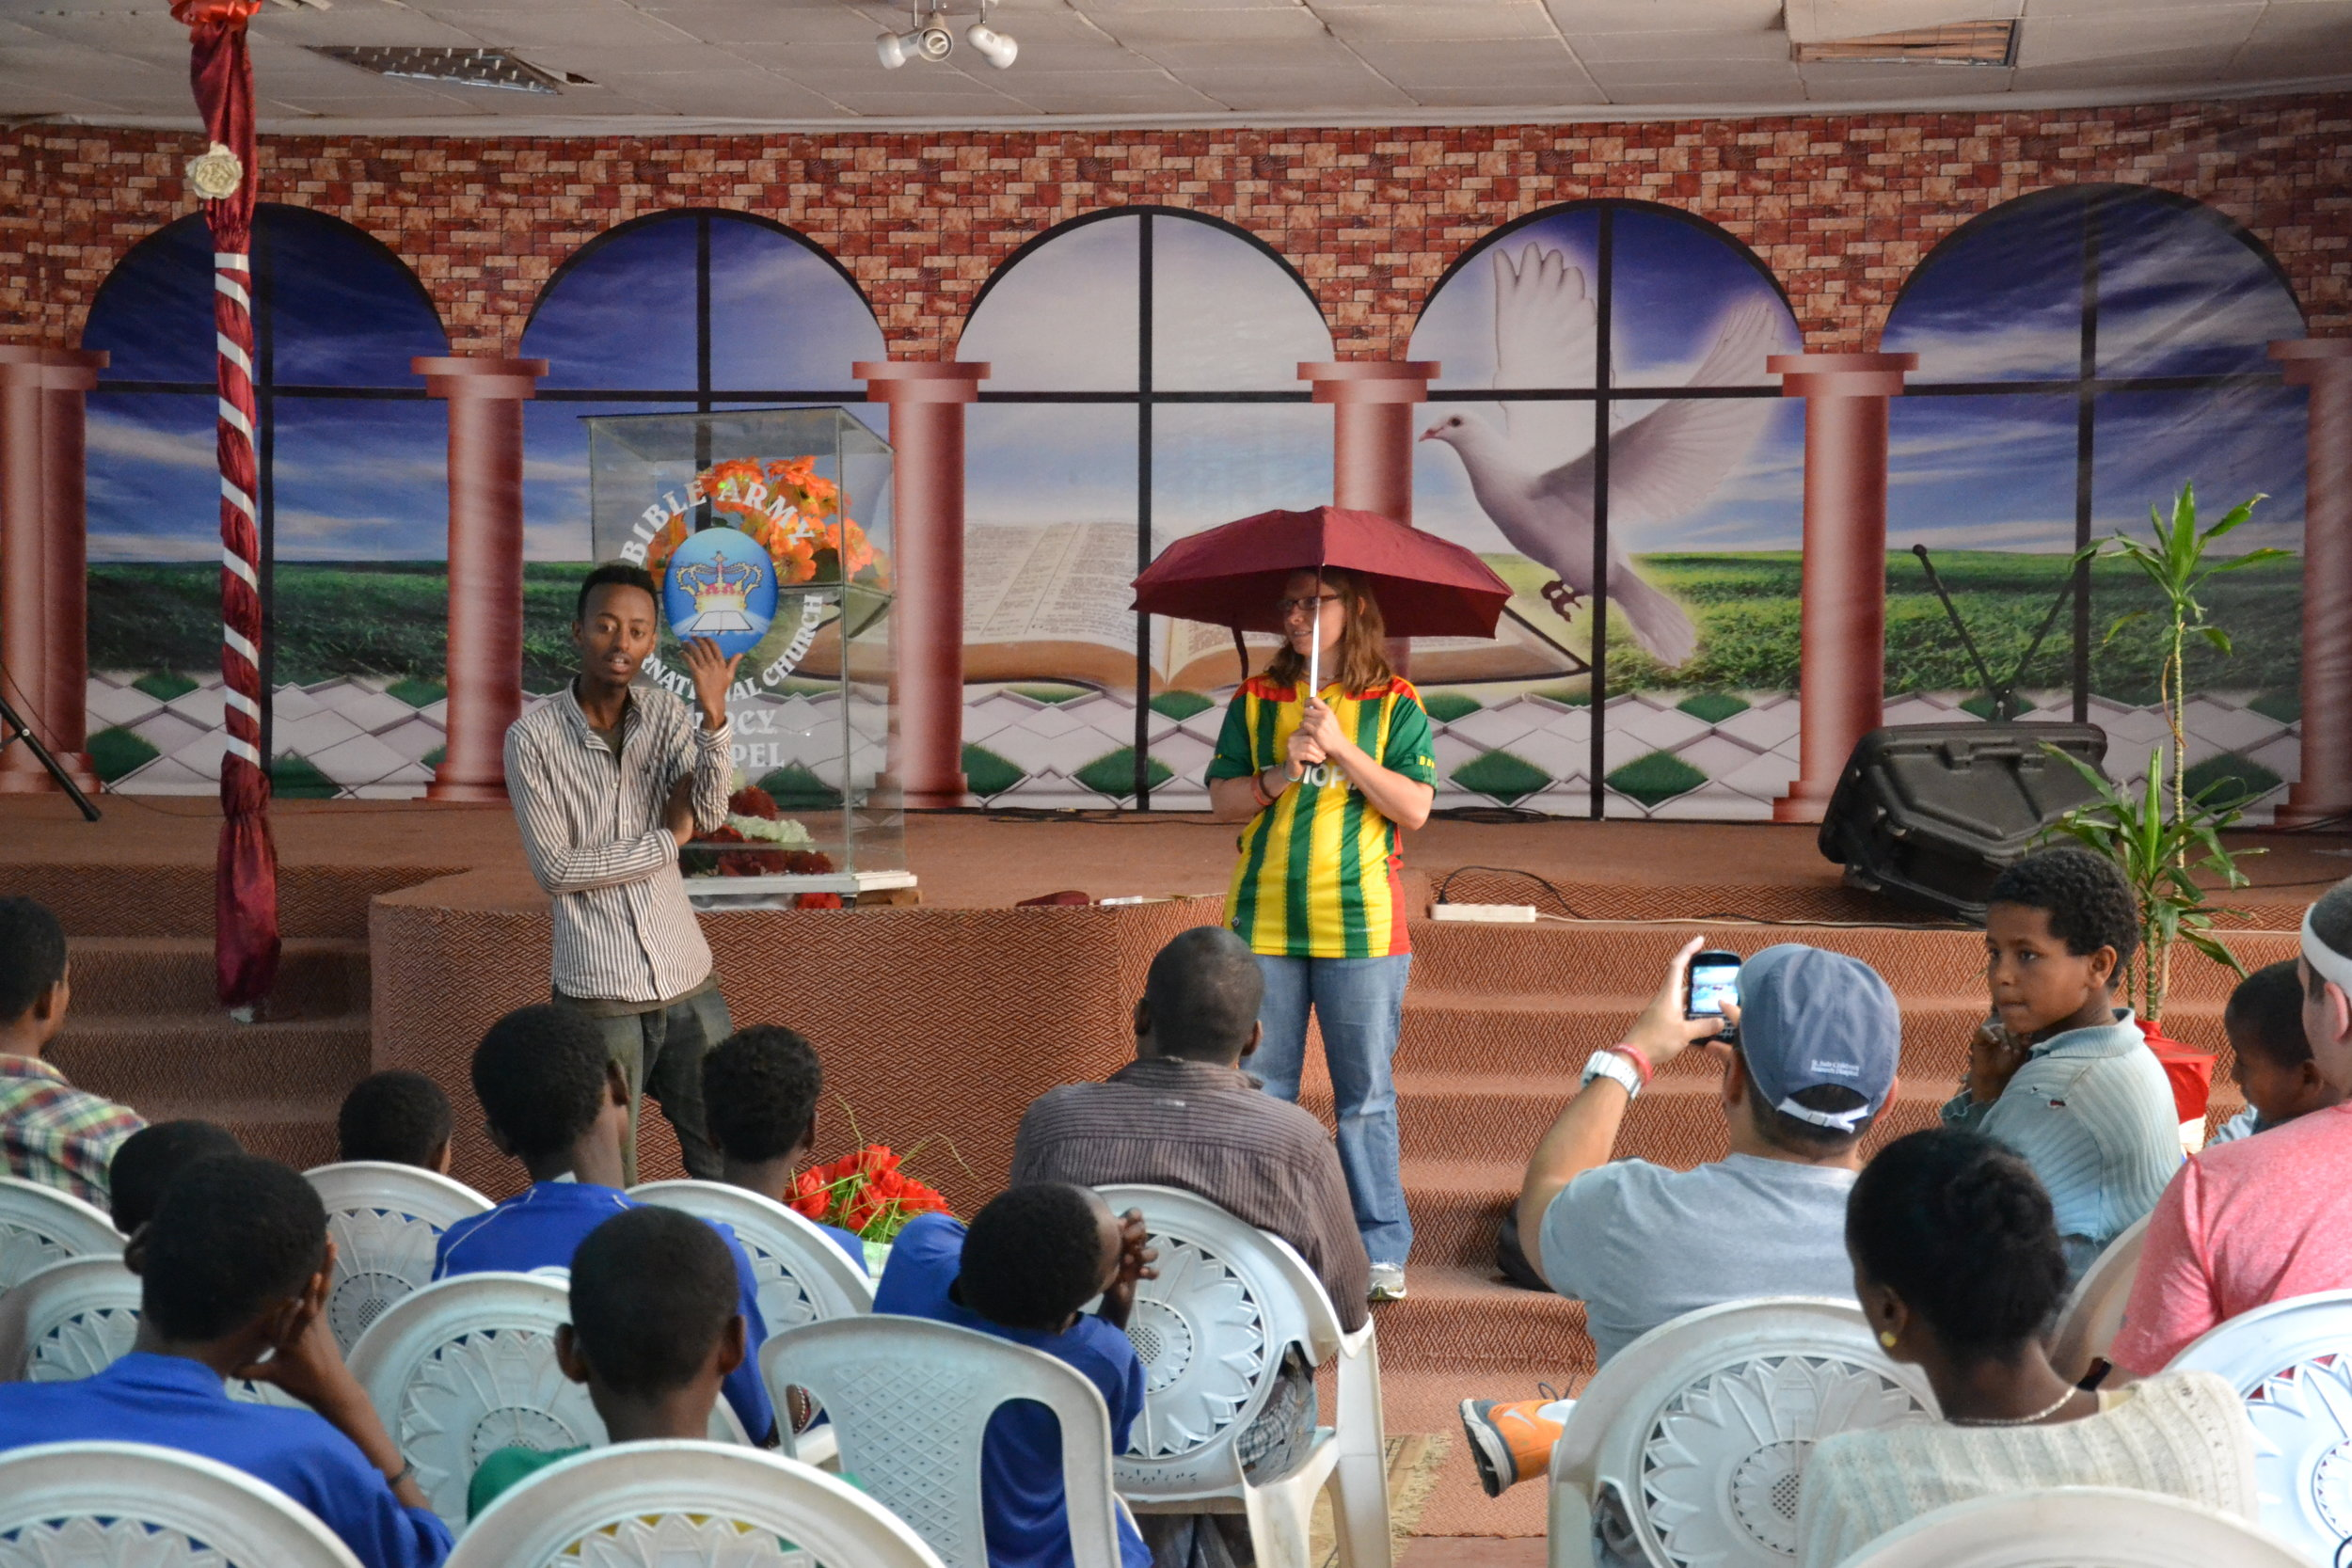 Cathy using an umbrella to demonstrate the enveloping presence of God.